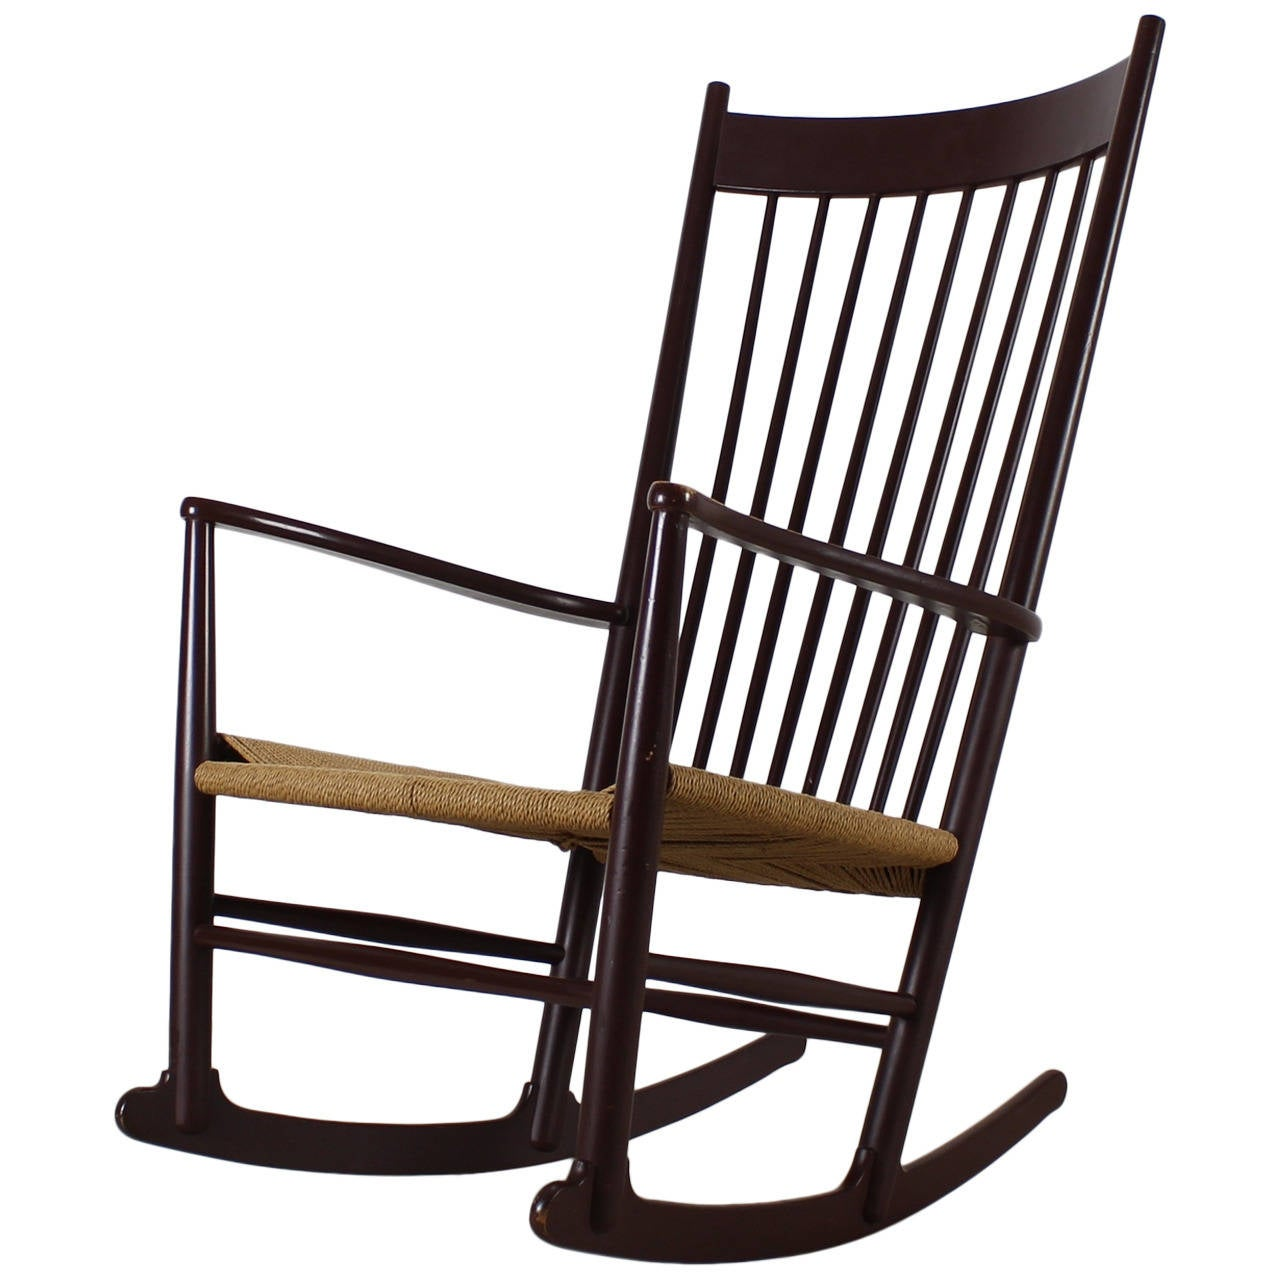 Hans Wegner Rocking Chair For FDB Møbler Denmark At 1stdibs. Full resolution‎  portraiture, nominally Width 1280 Height 1280 pixels, portraiture with #896842.